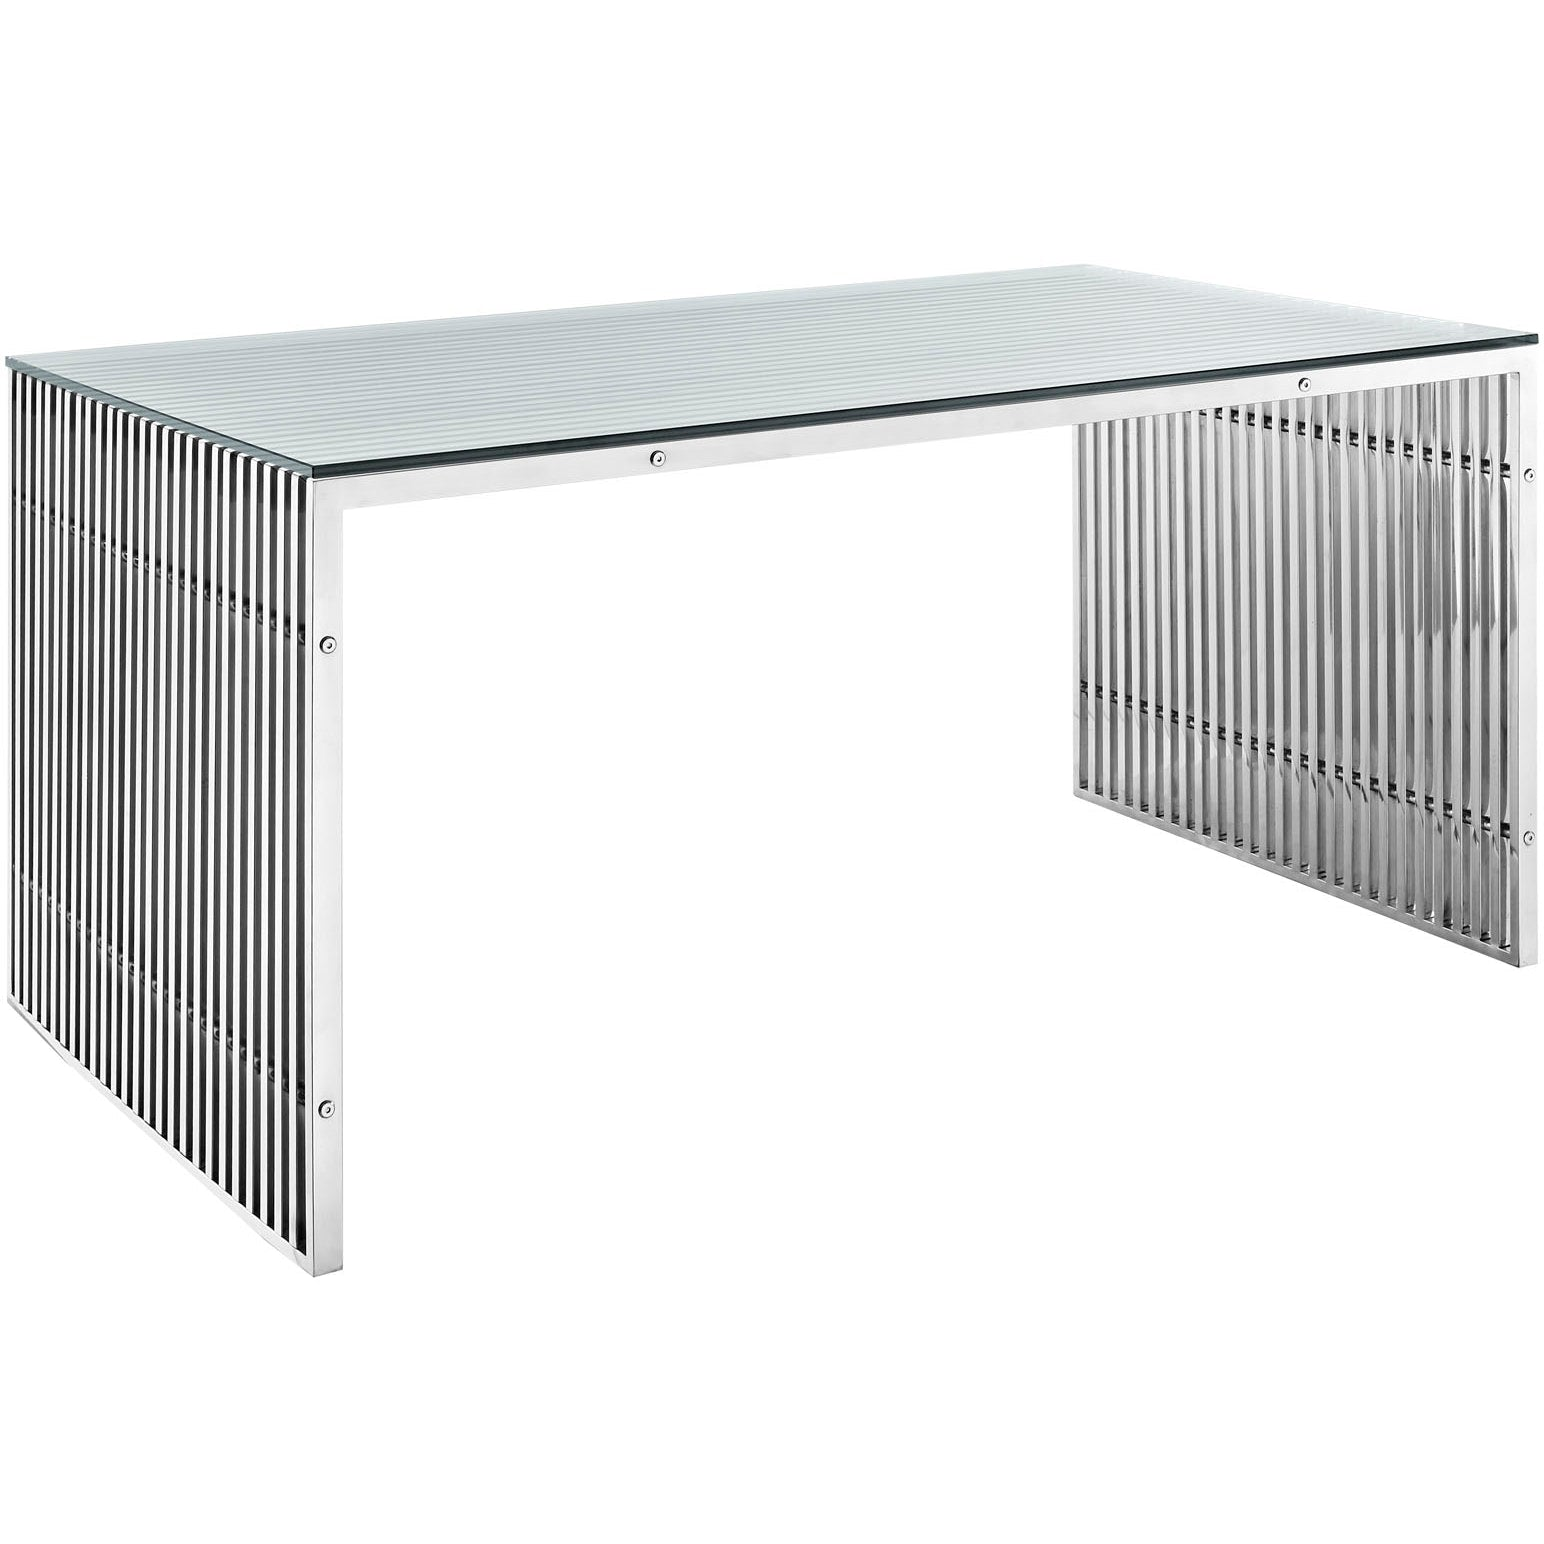 Gridiron Stainless Steel Rectangle Dining Table - Silver